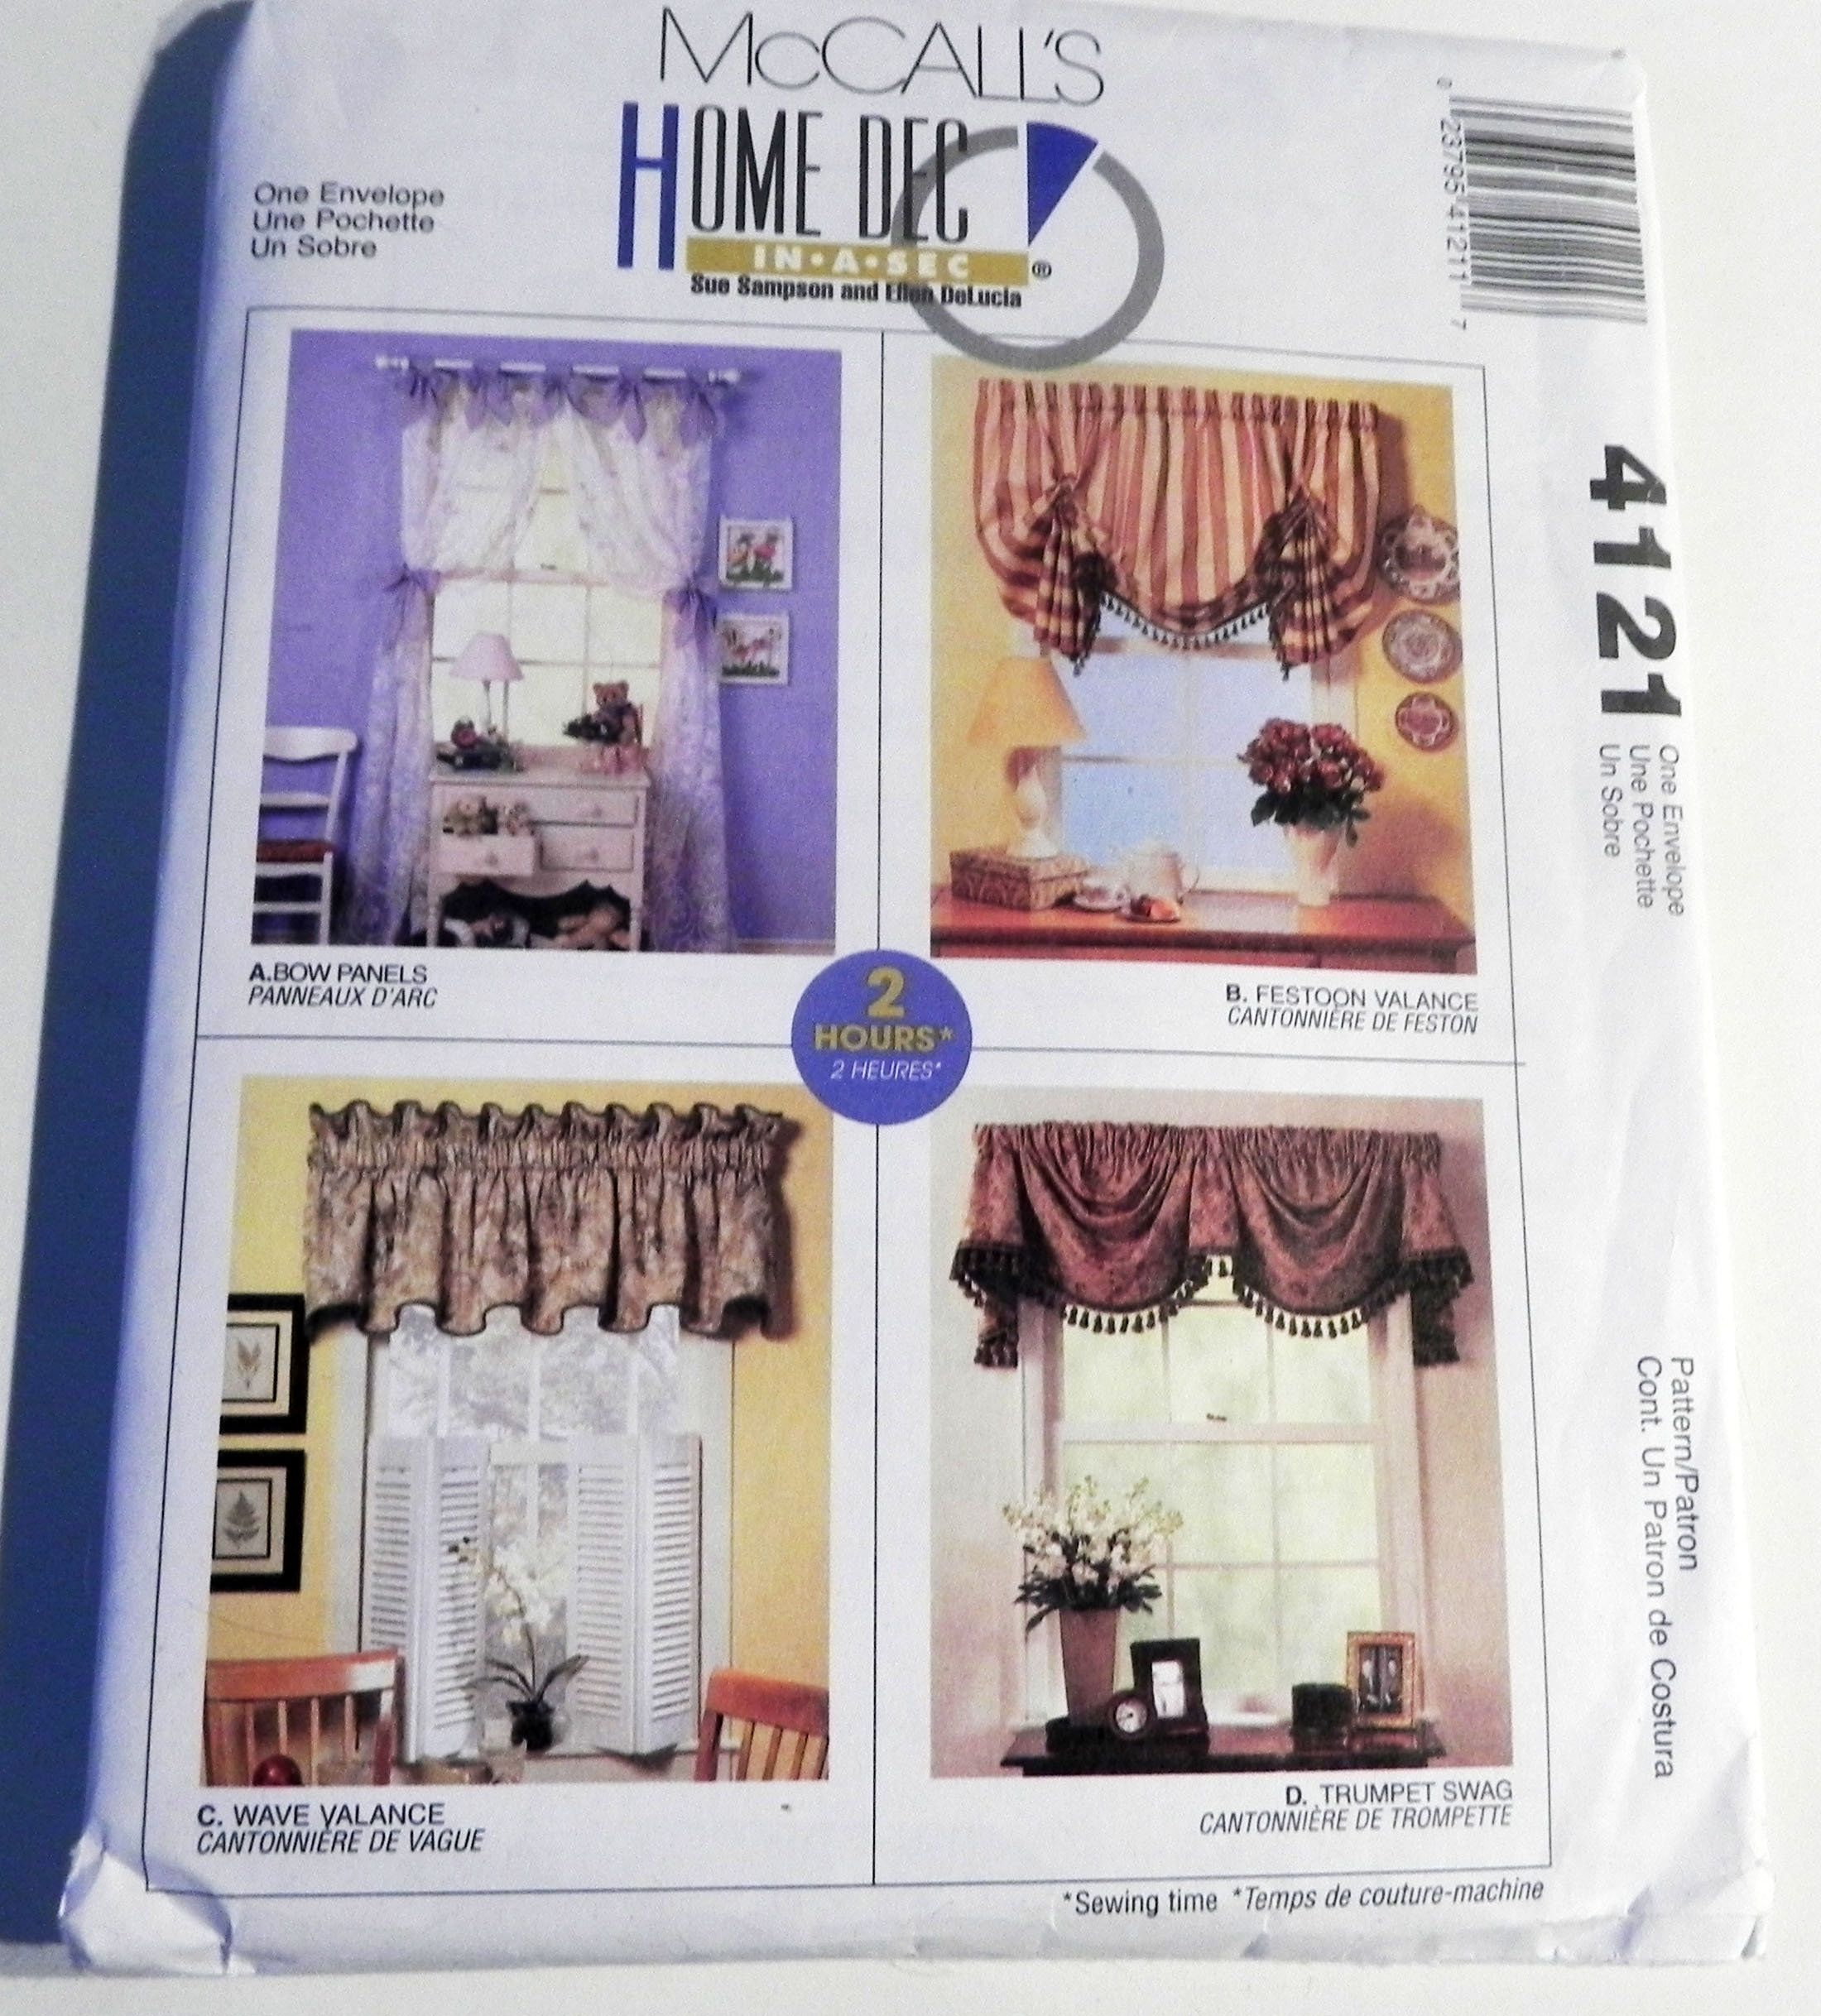 Curtains Window Treatments Valance Home Decor Dressing Swag In 2020 Crafts Sewing Patterns Curtains Window Treatments Mccalls Sewing Patterns